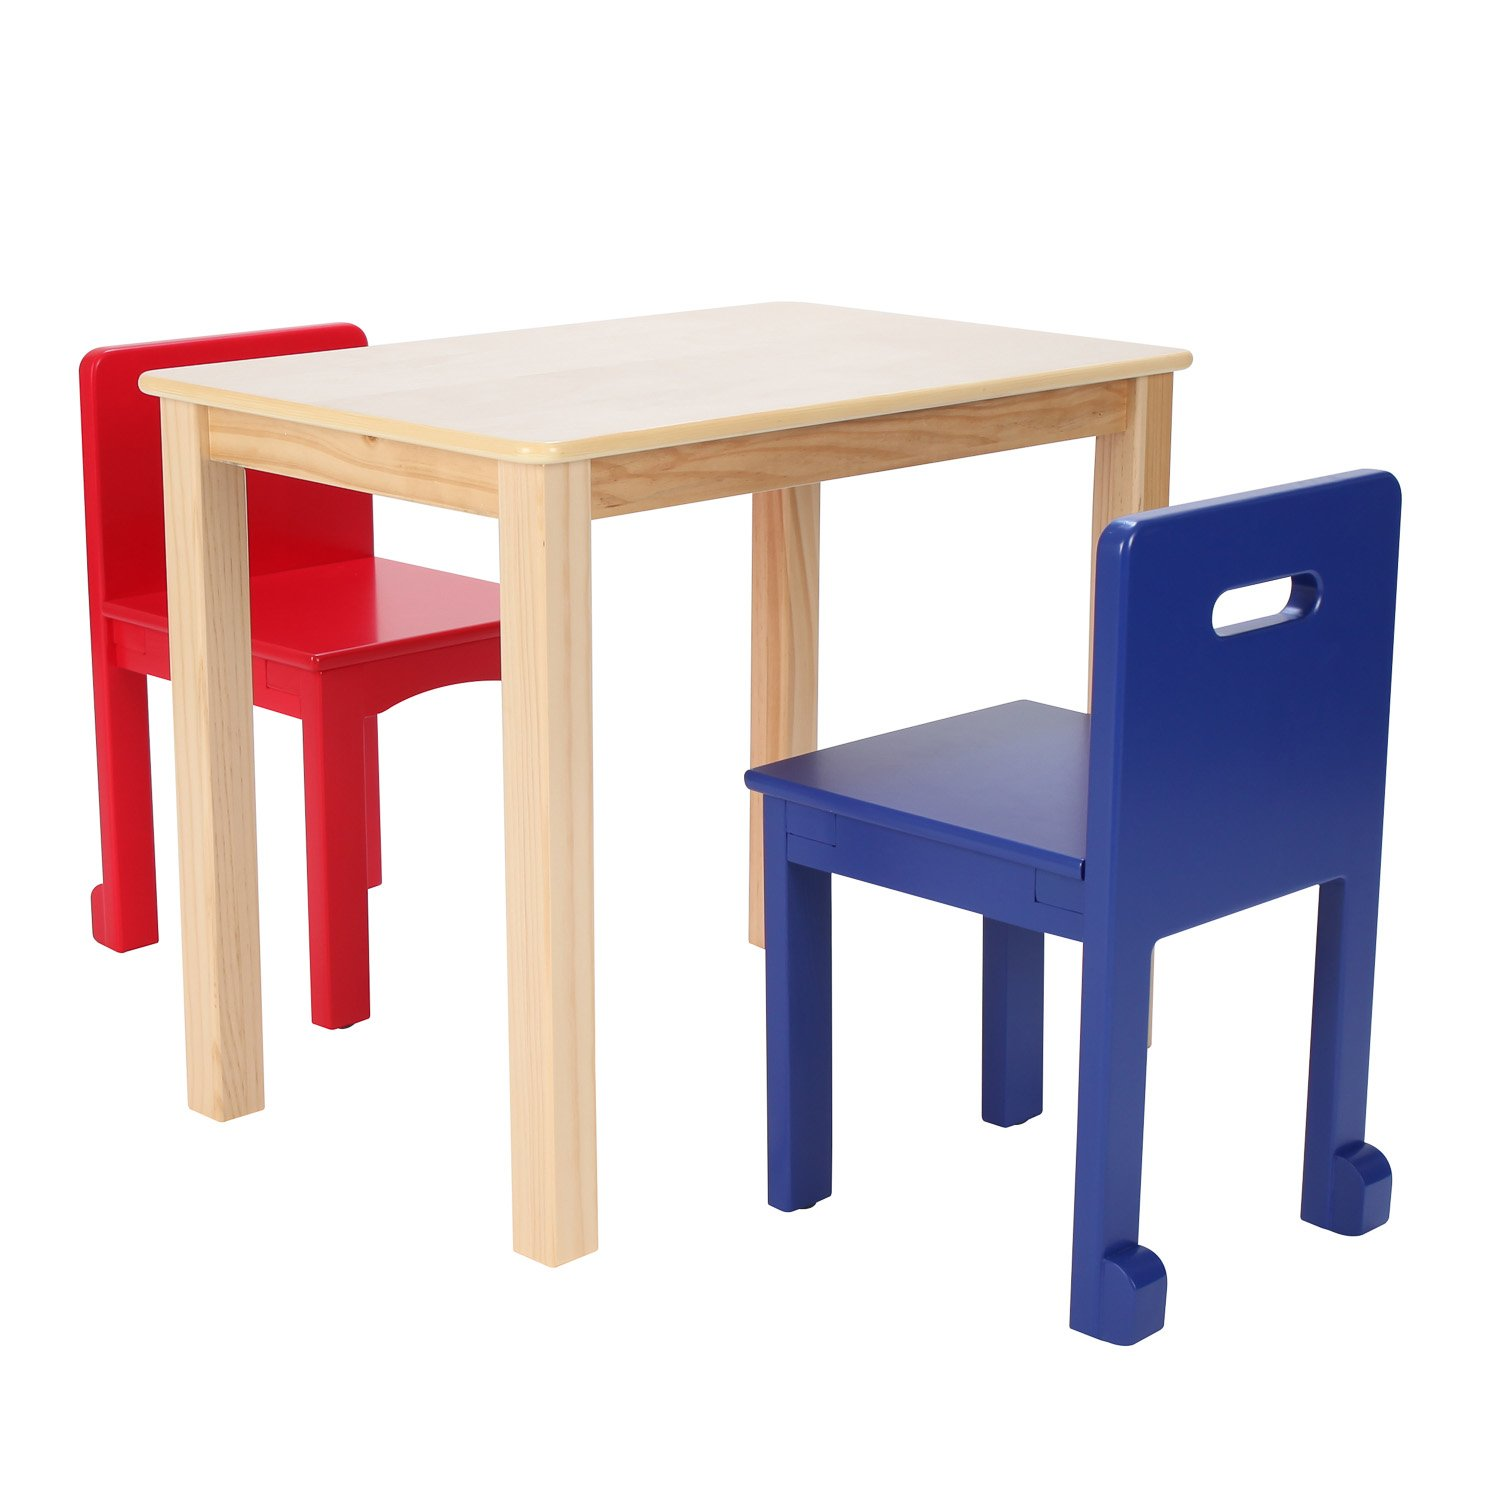 Max & Lily Natural Wood Kid and Toddler Rectangular Table +  Chairs (Blue, Red)